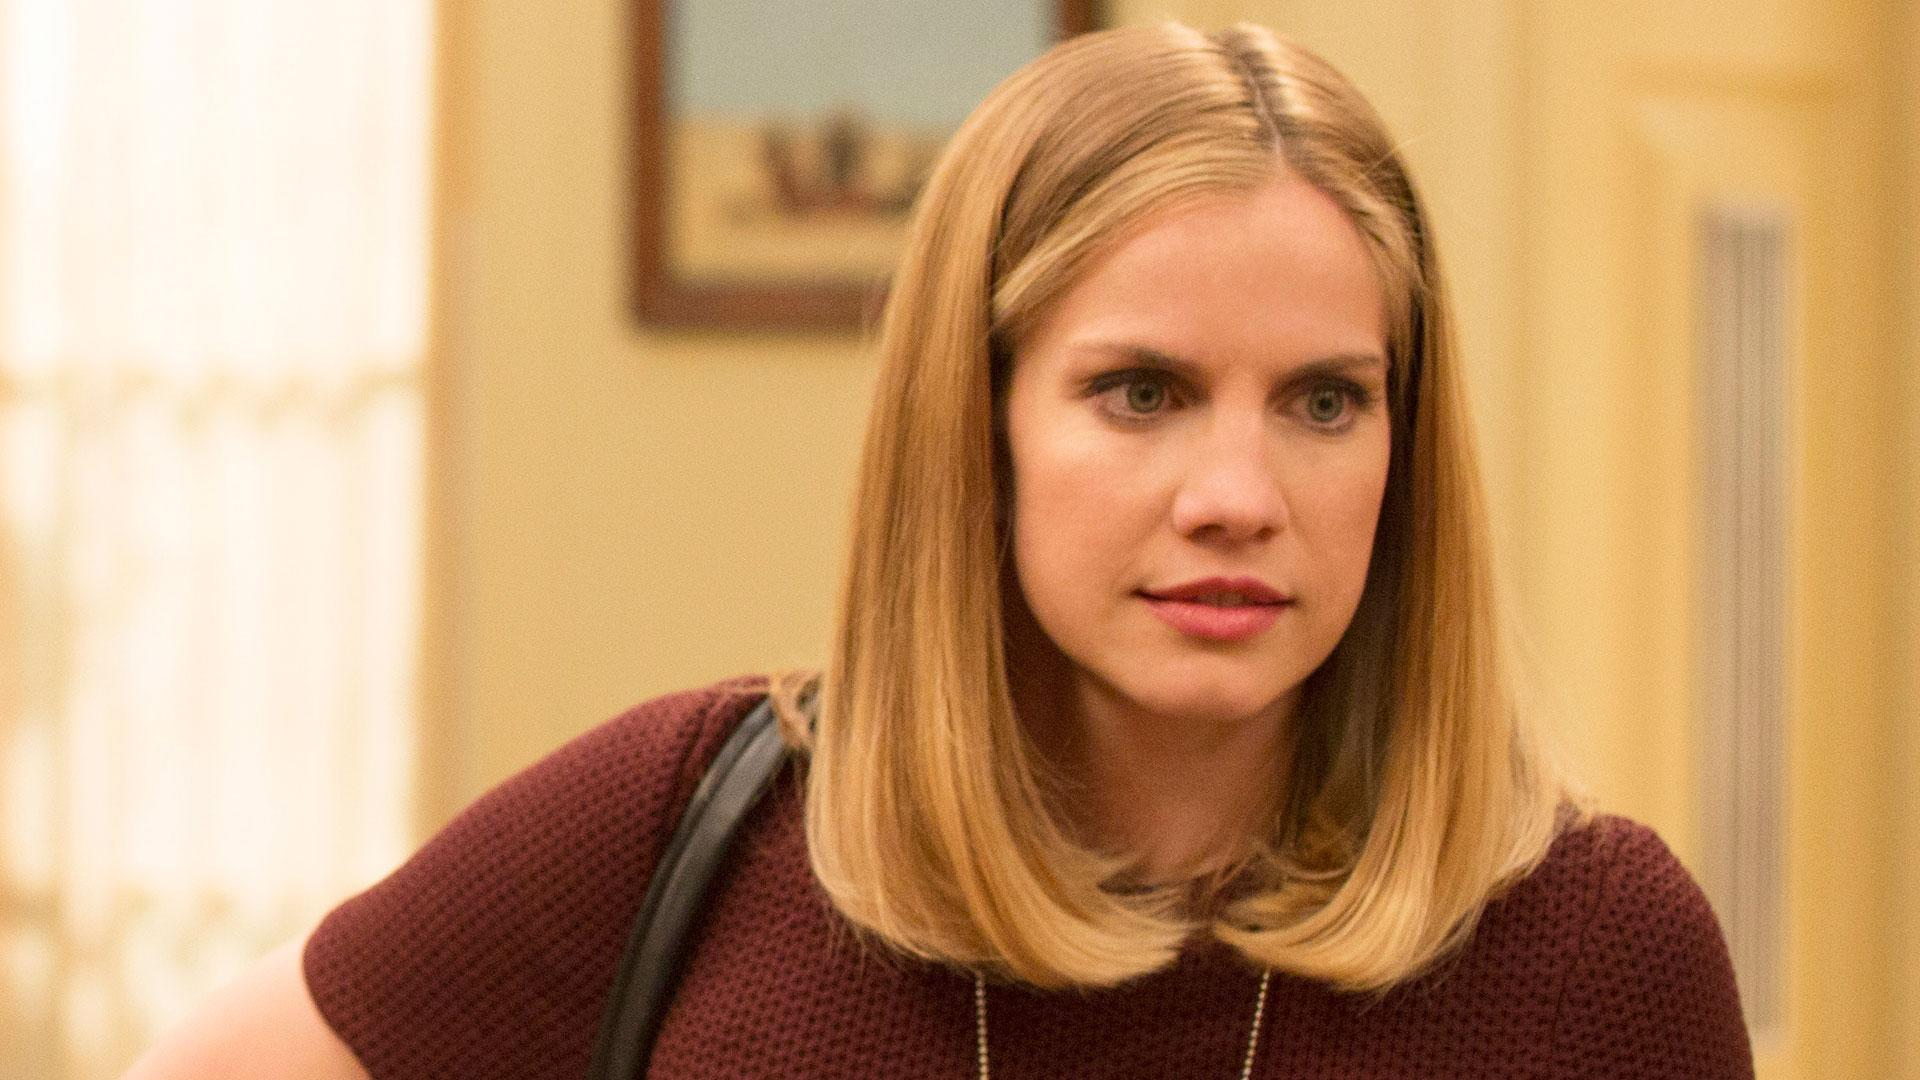 'Veep's' Anna Chlumsky on Career Women, Emmys and Showrunner Switching